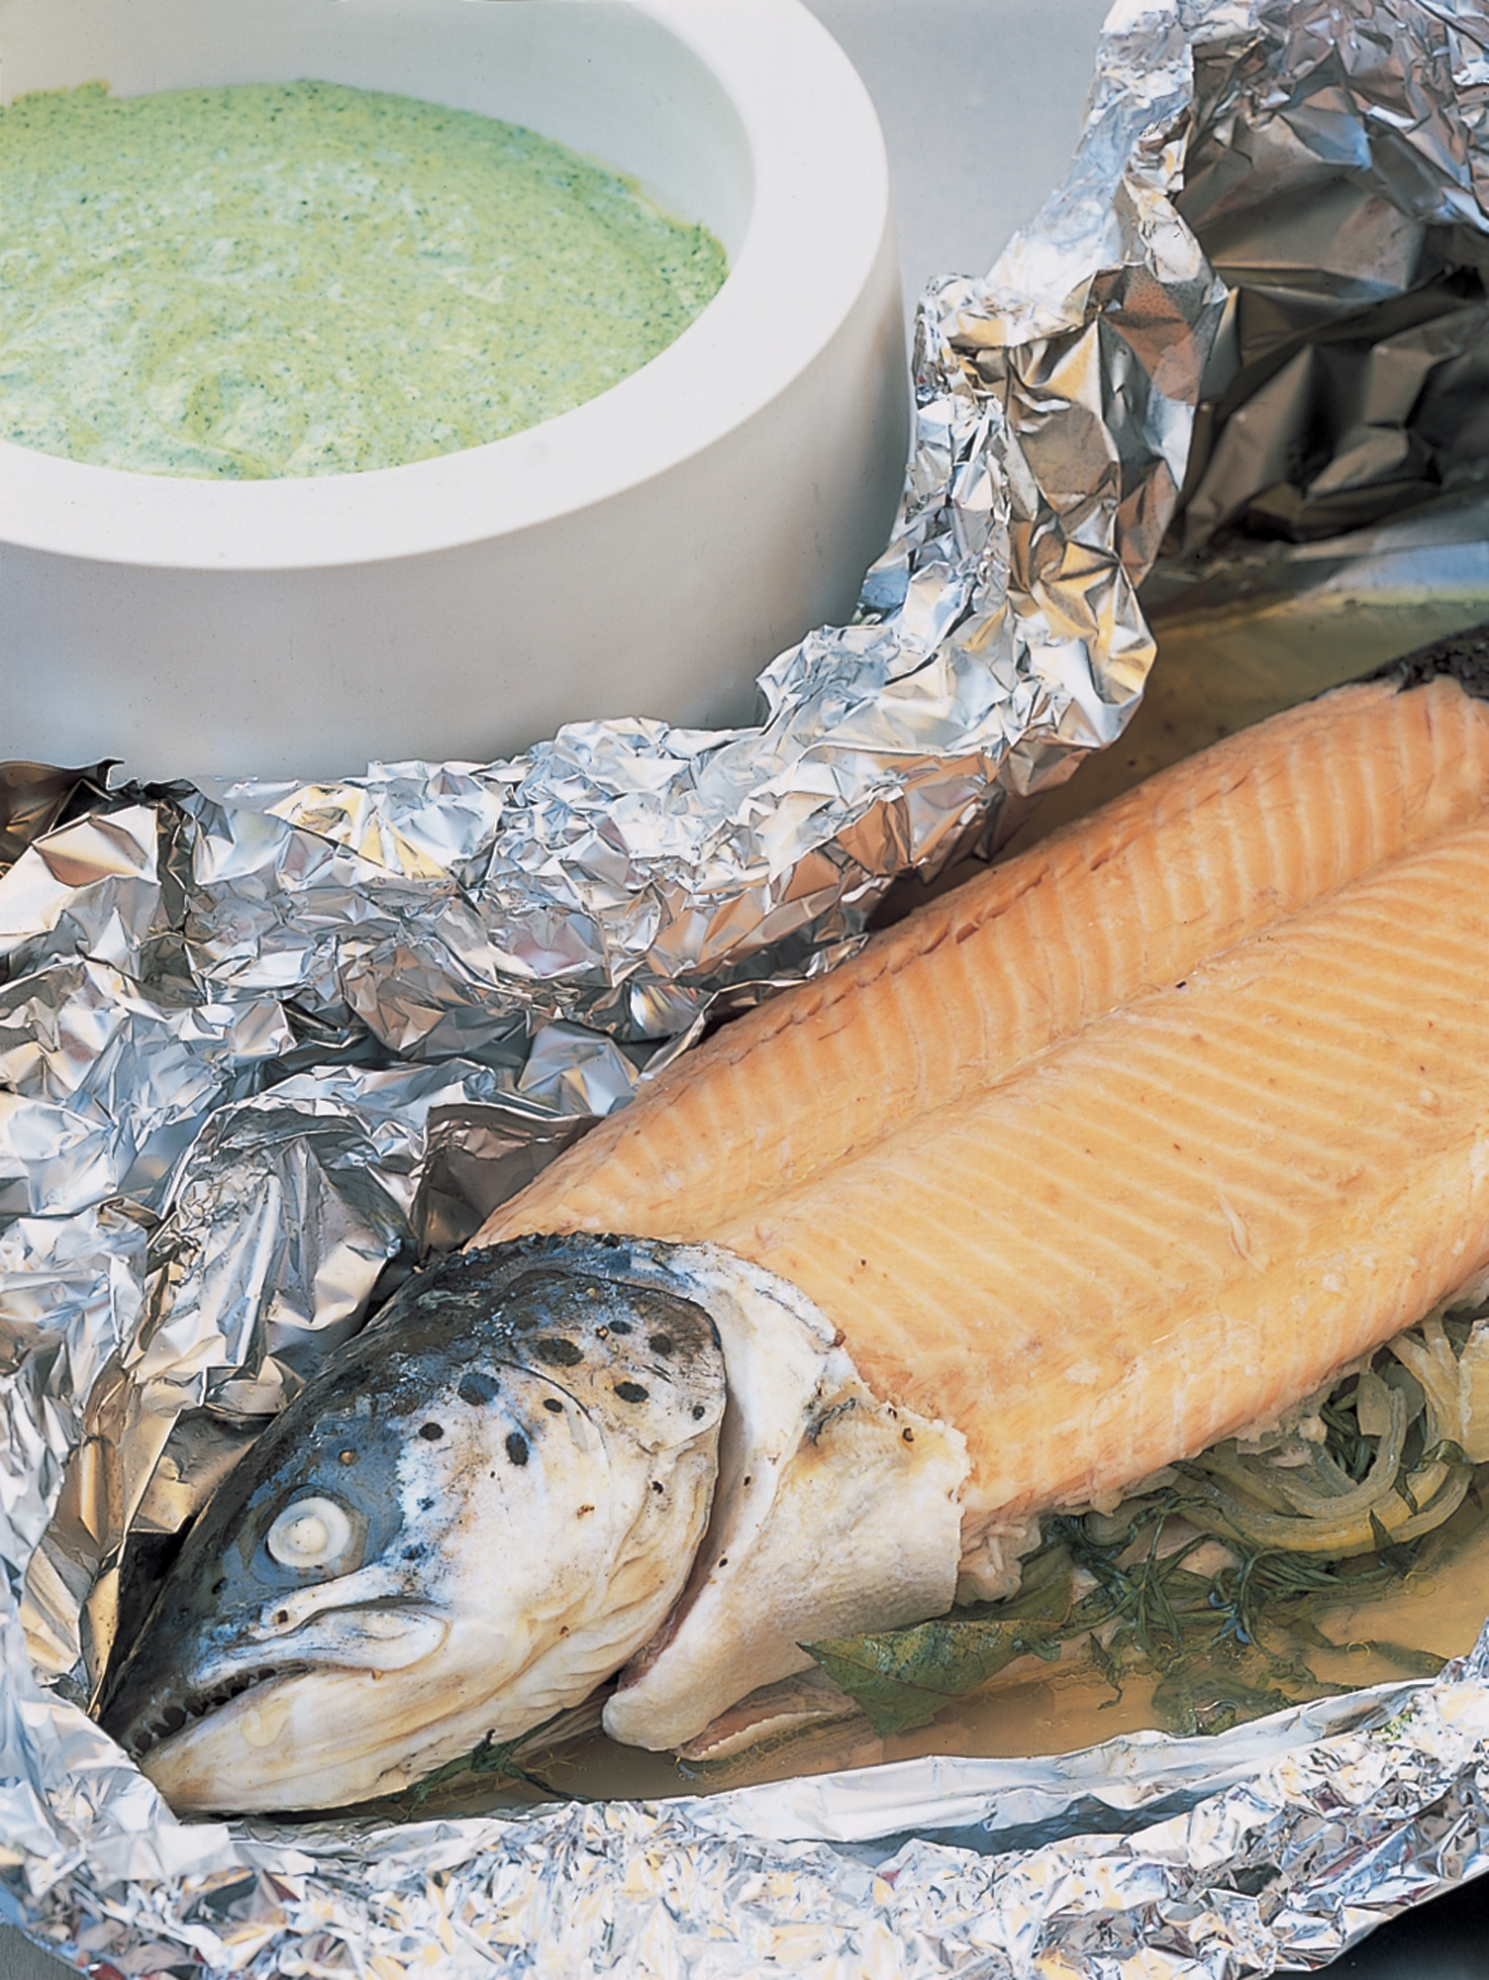 Foilbaked Whole Fresh Salmon With Green Herb Mayonnaise  Recipes  Delia  Online